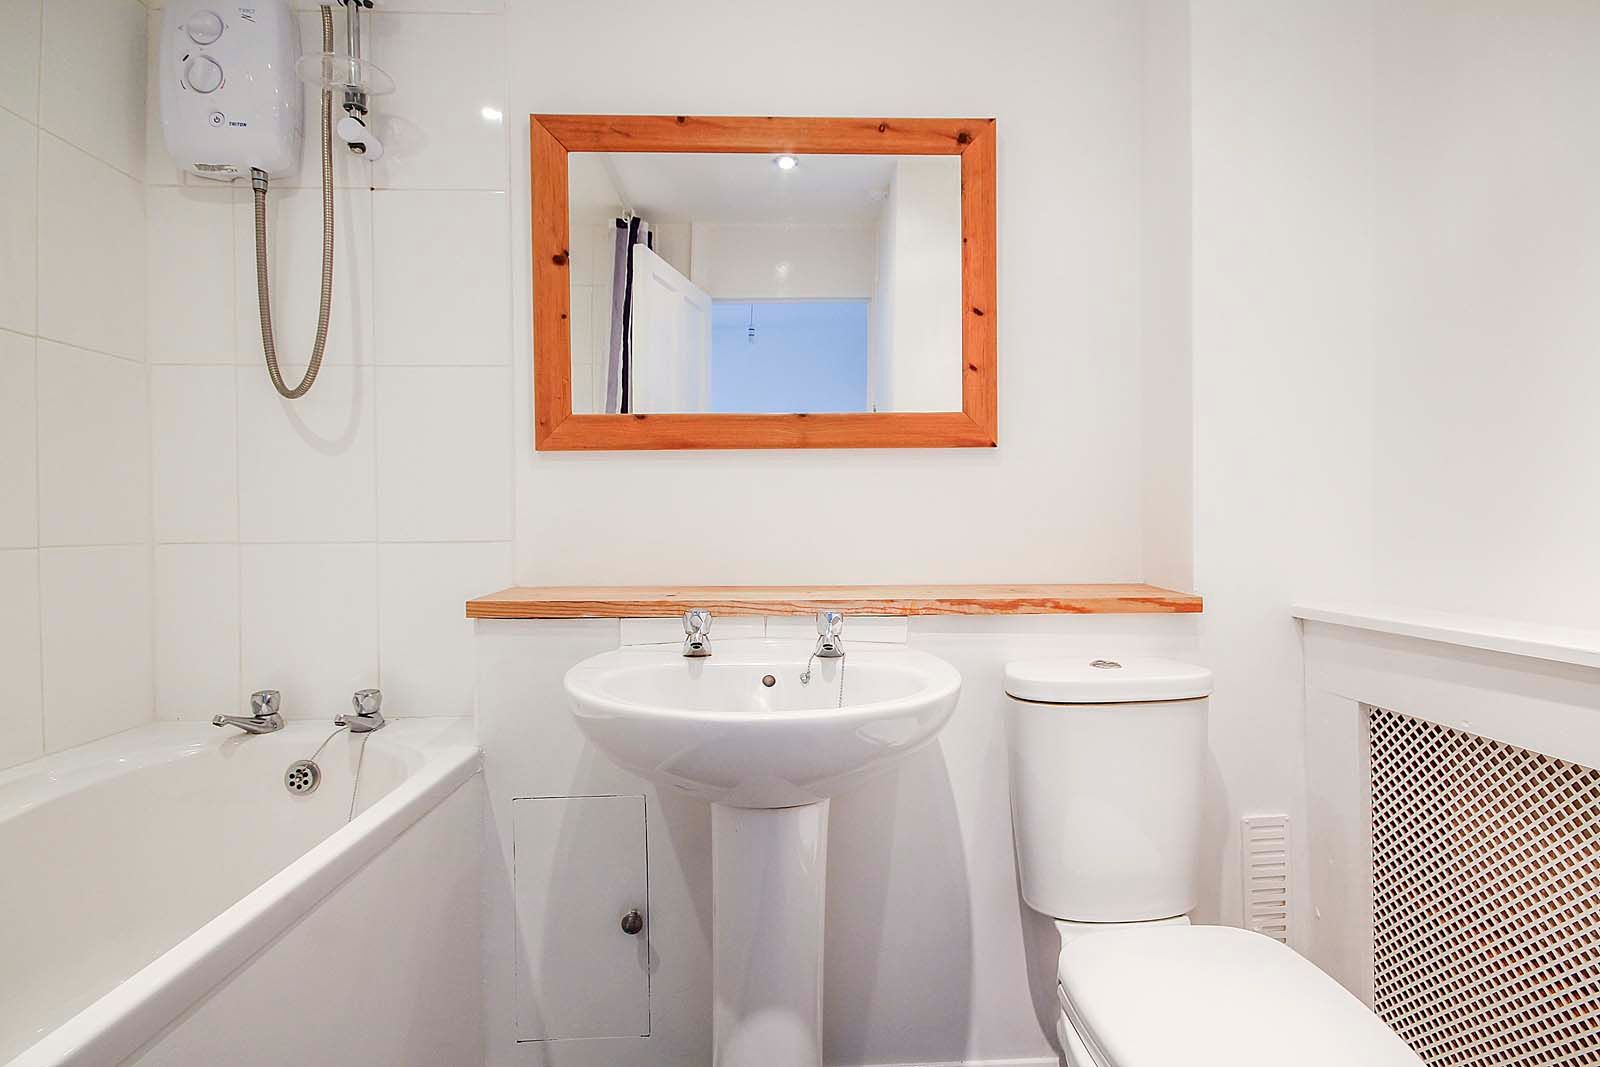 2 bed house for sale in Church Way COMP Jan 2019 9